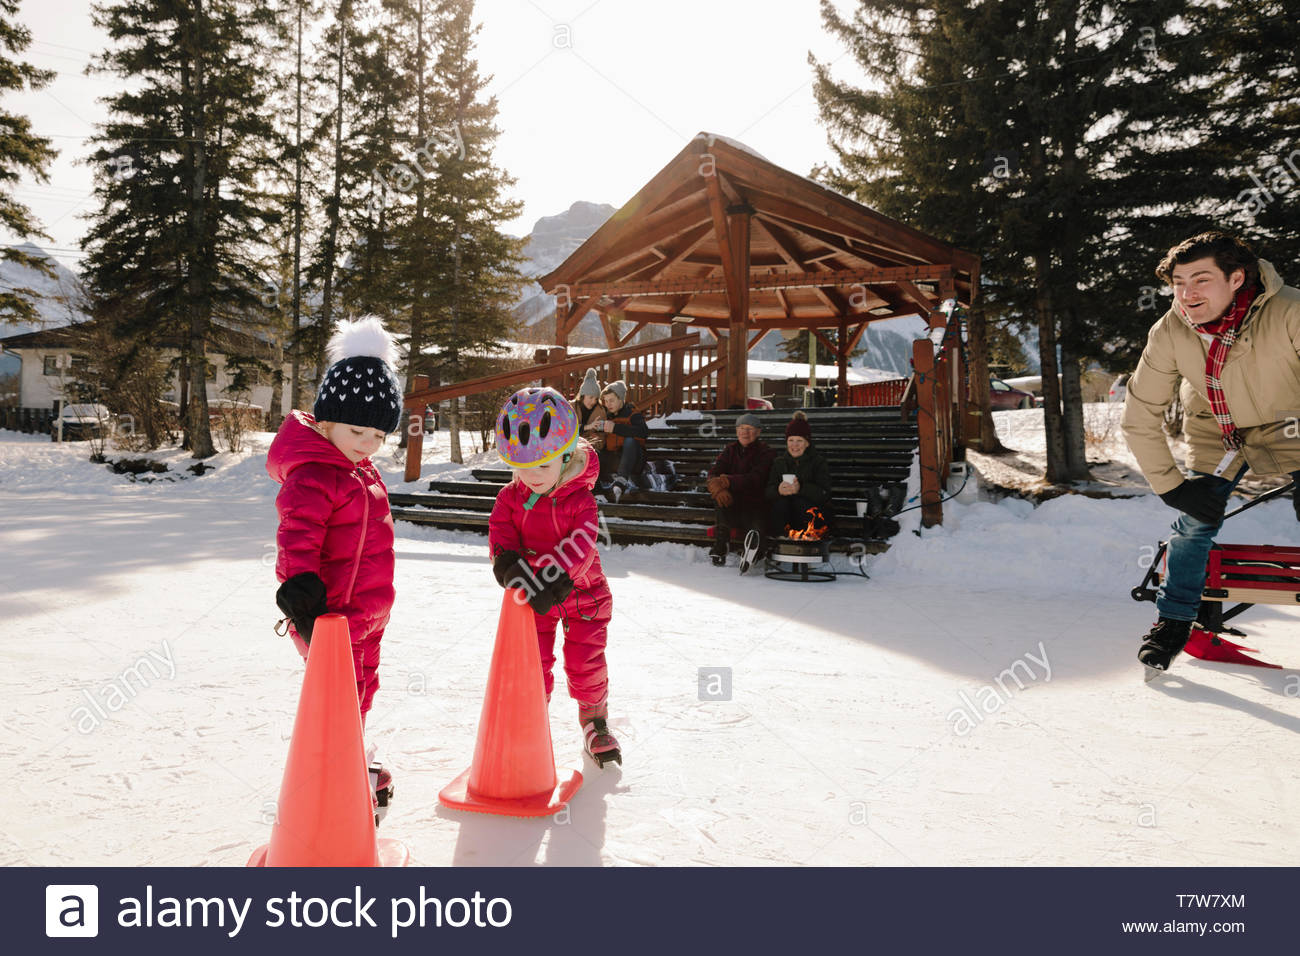 Father and toddler daughters ice skating on frozen pond - Stock Image